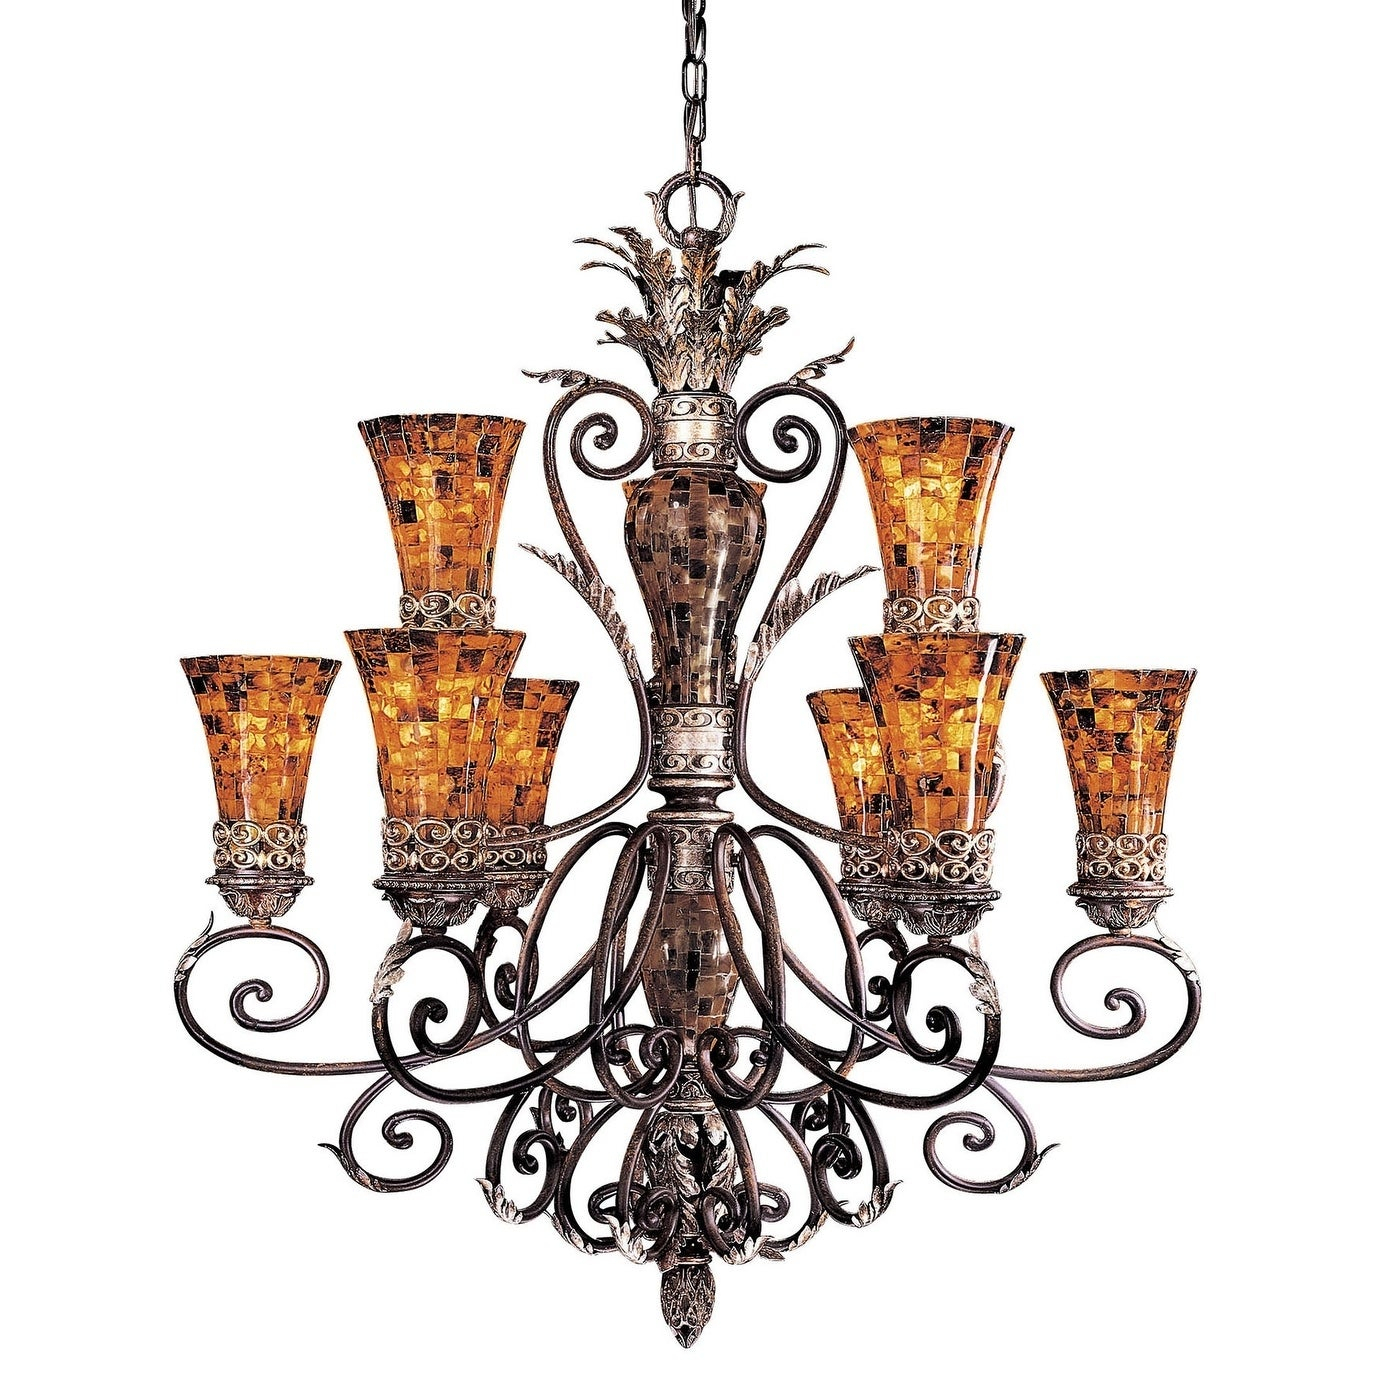 Minka Metropolitan Salamanca 9 Light Chandelier with Asher 12-Light Sputnik Chandeliers (Image 21 of 30)